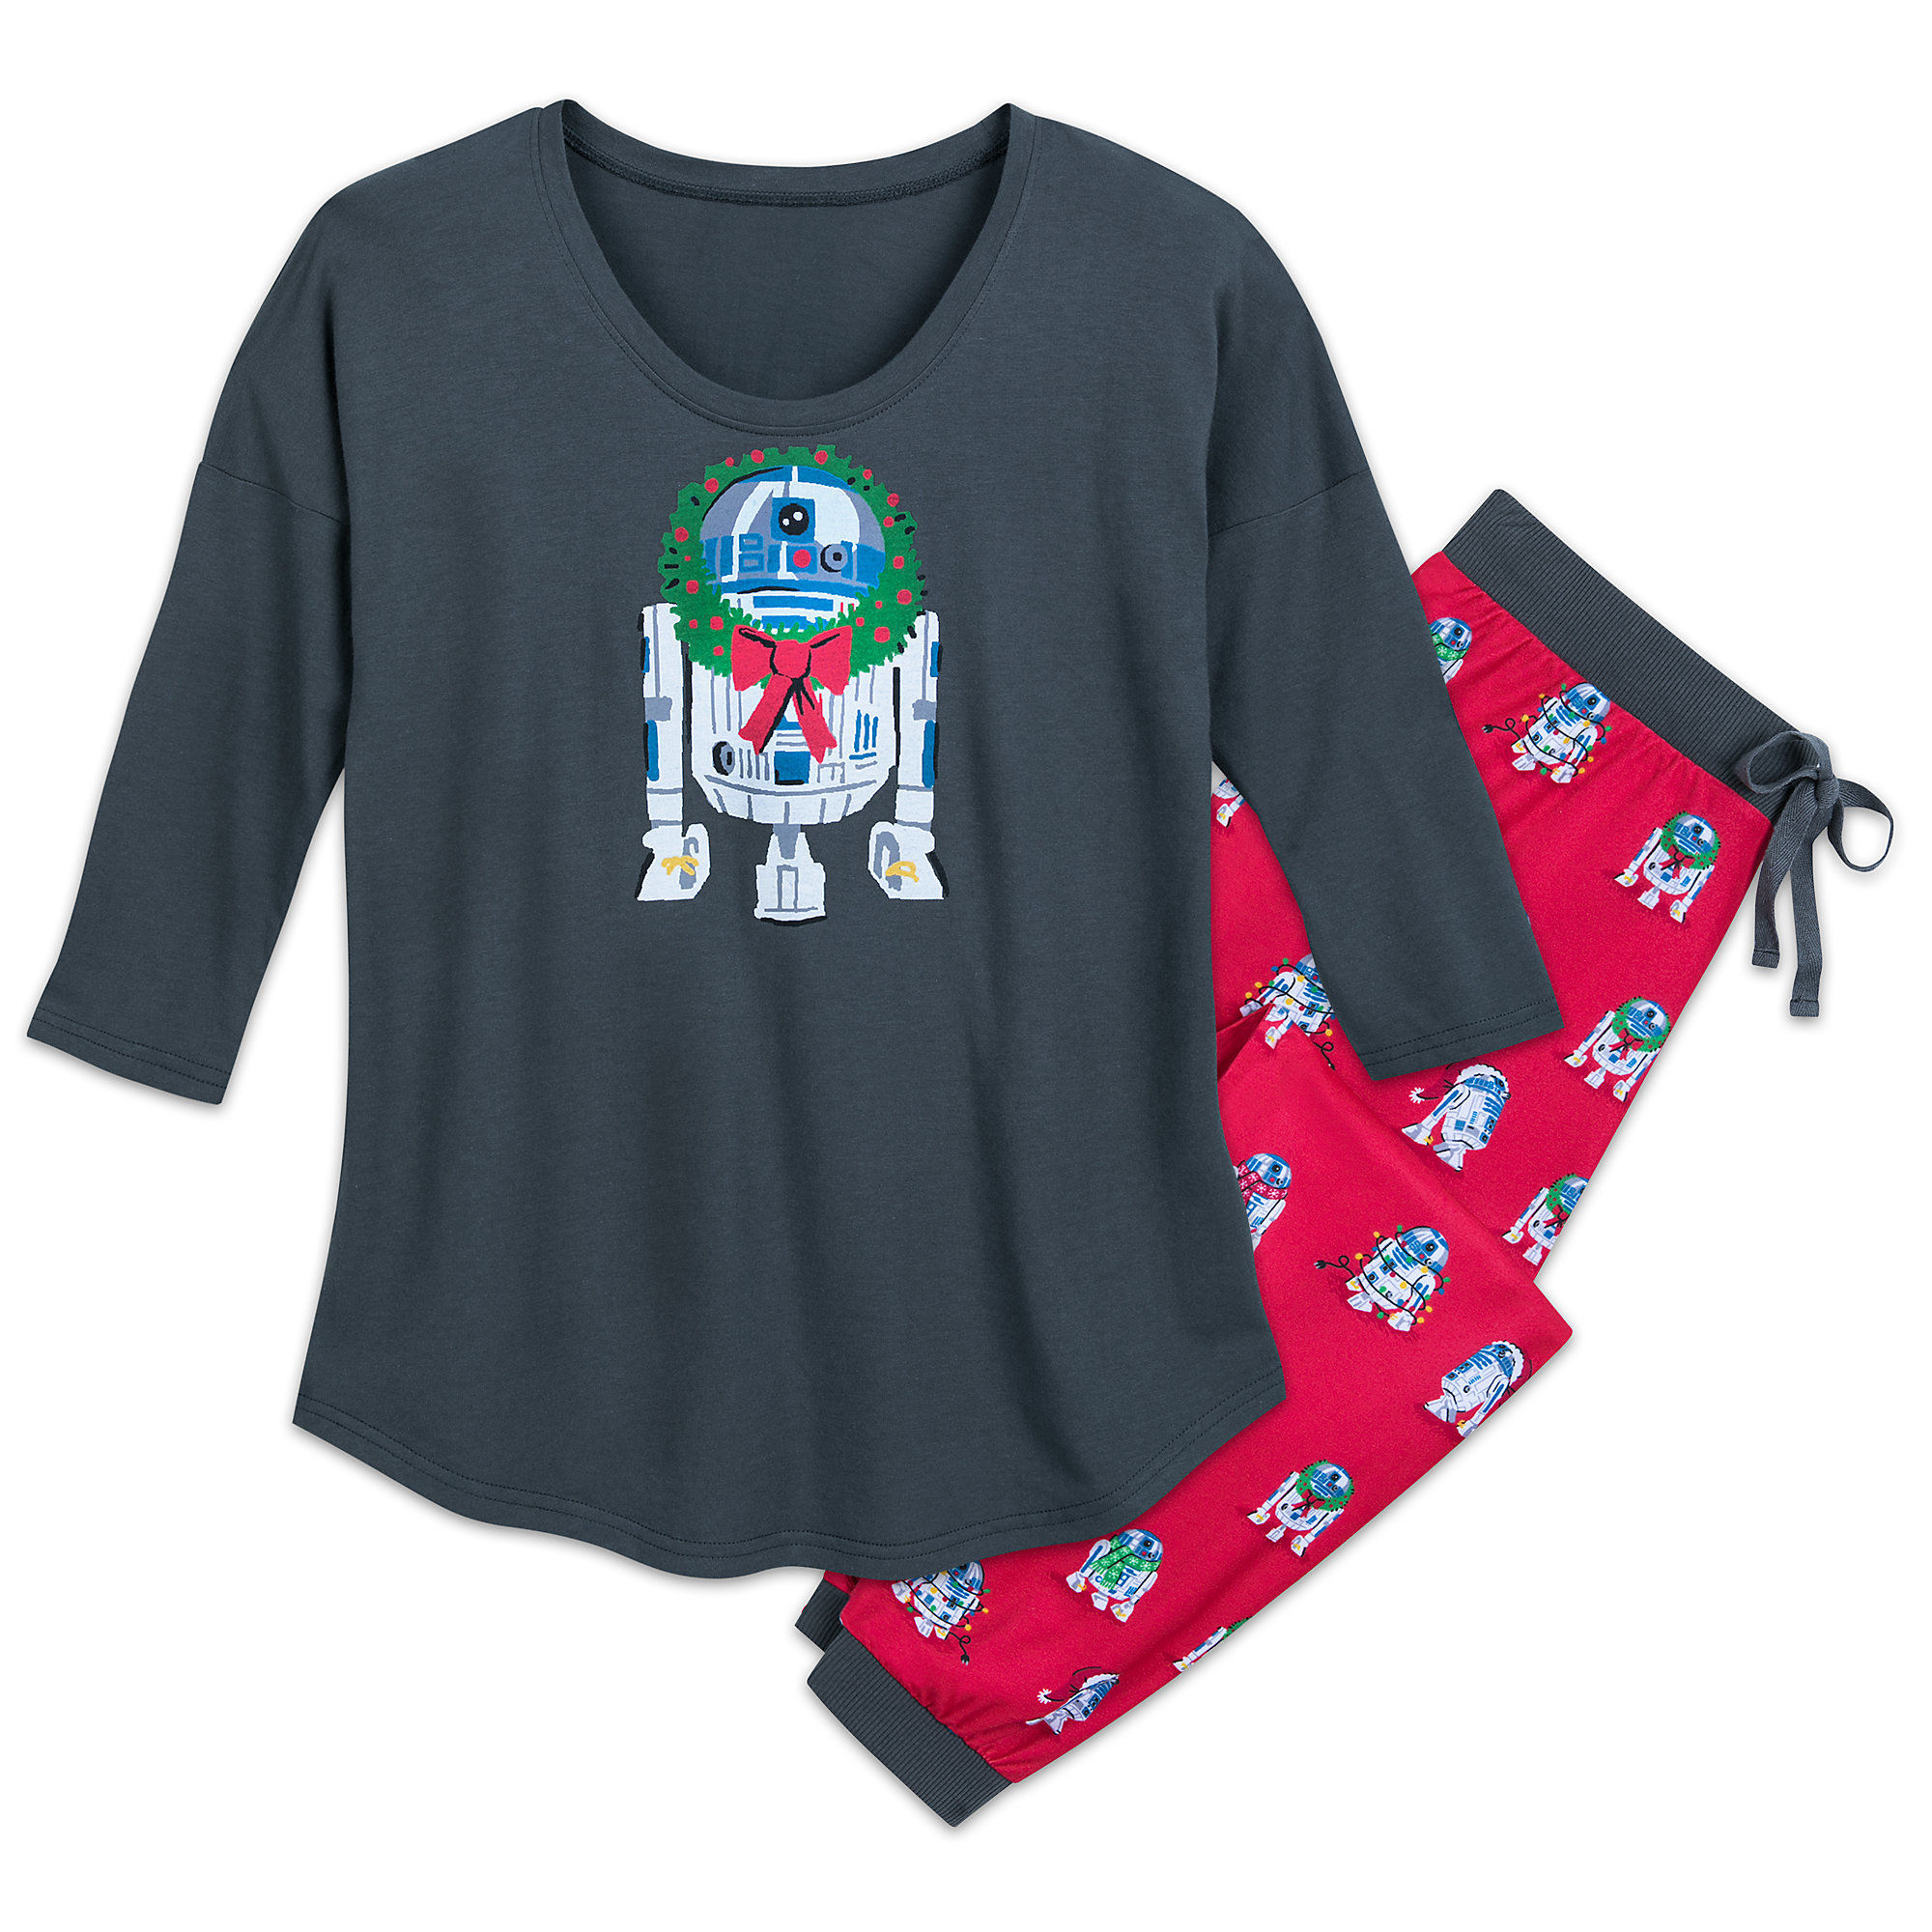 Women's Munki Munki x Star Wars R2-D2 Holiday Sleepwear Set at Shop Disney